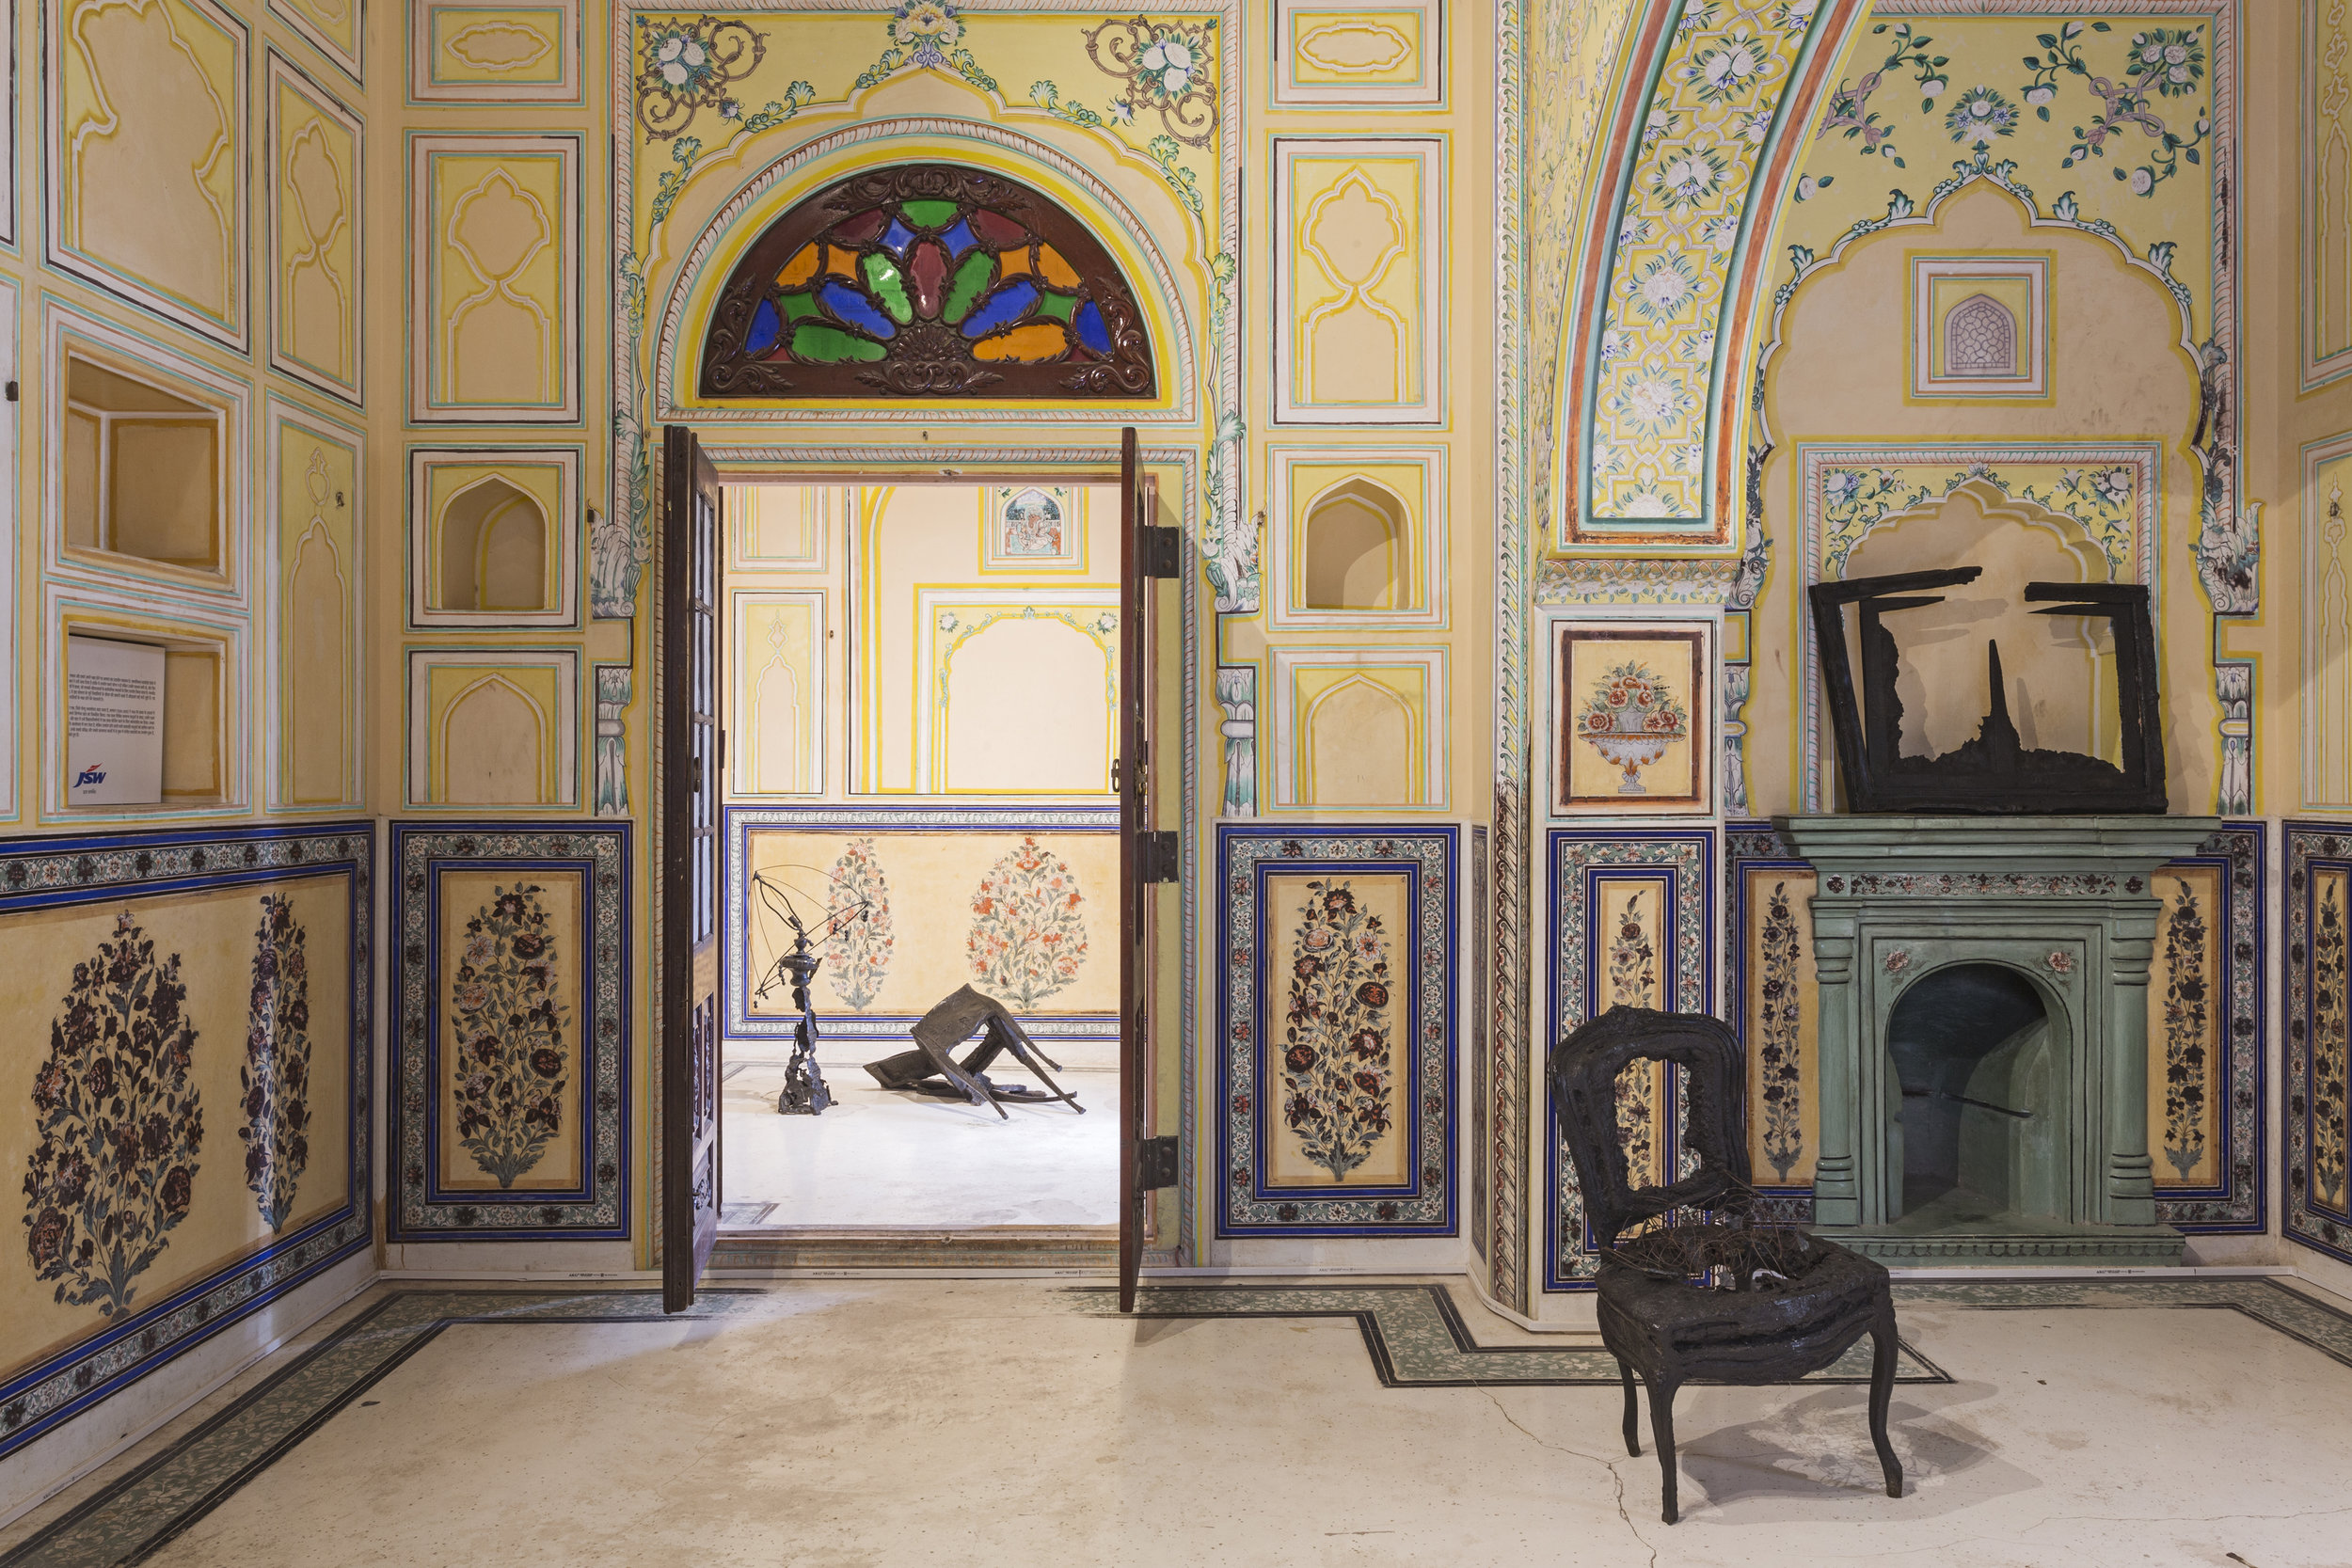 'The Day After' by French-American artist Arman is one of the works found inside the palace's rooms, many of which maintaining their original frescos